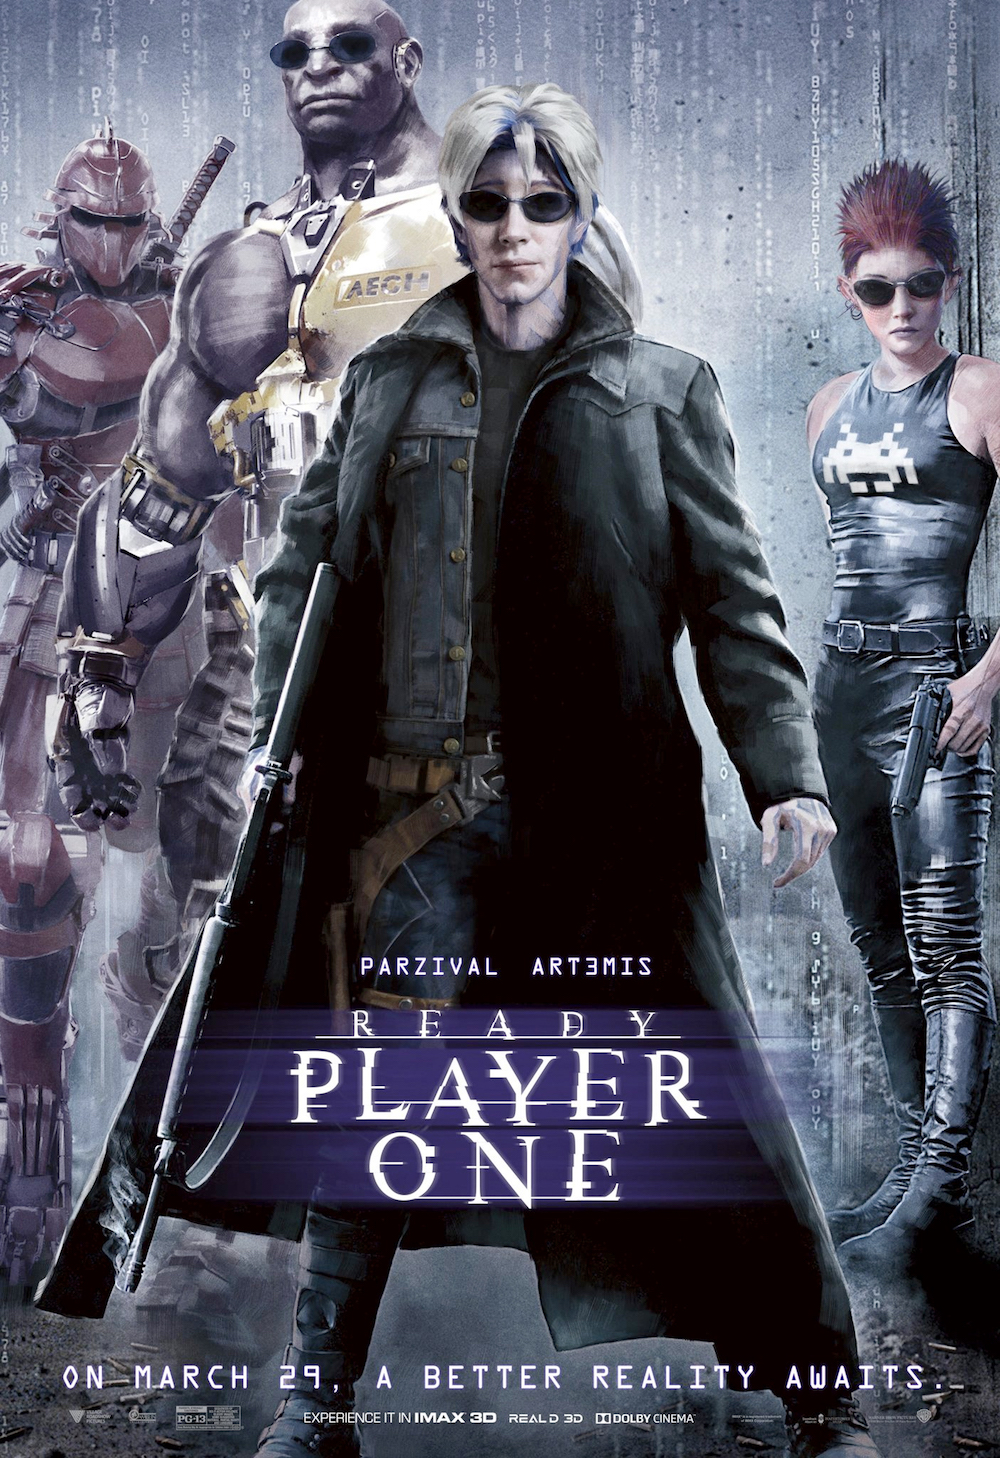 Ready Player One's New Posters Are Being Roundly Mocked and